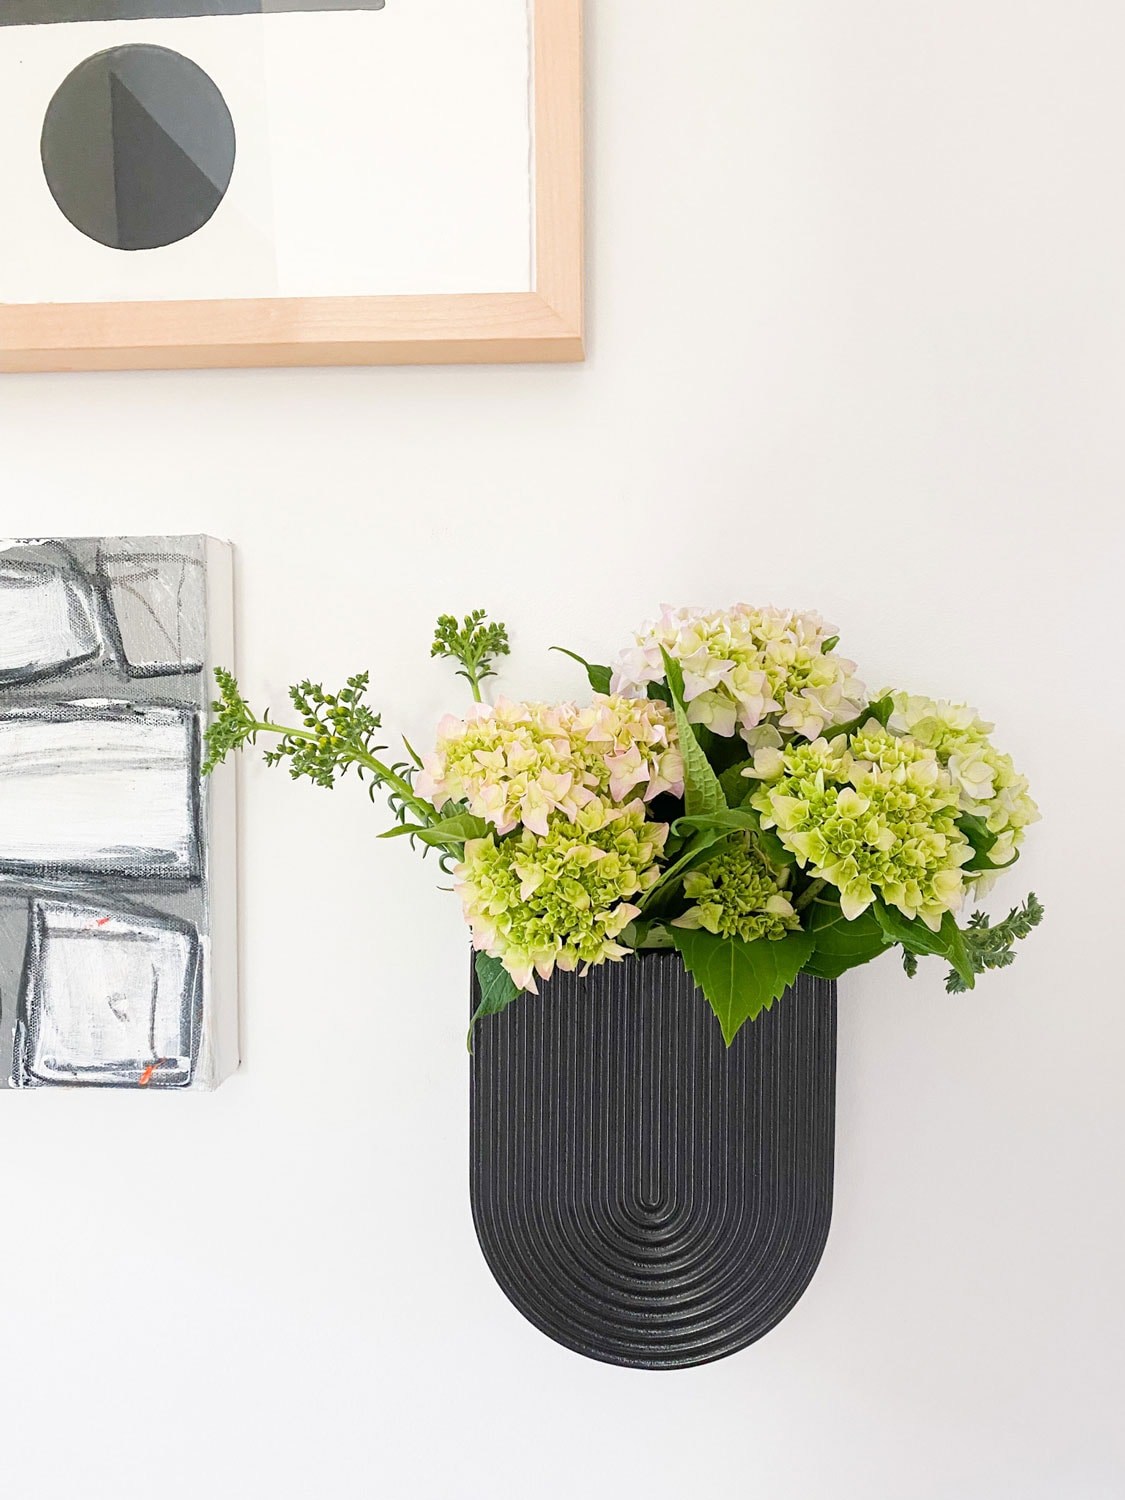 WALL VASE AND OTHER ART